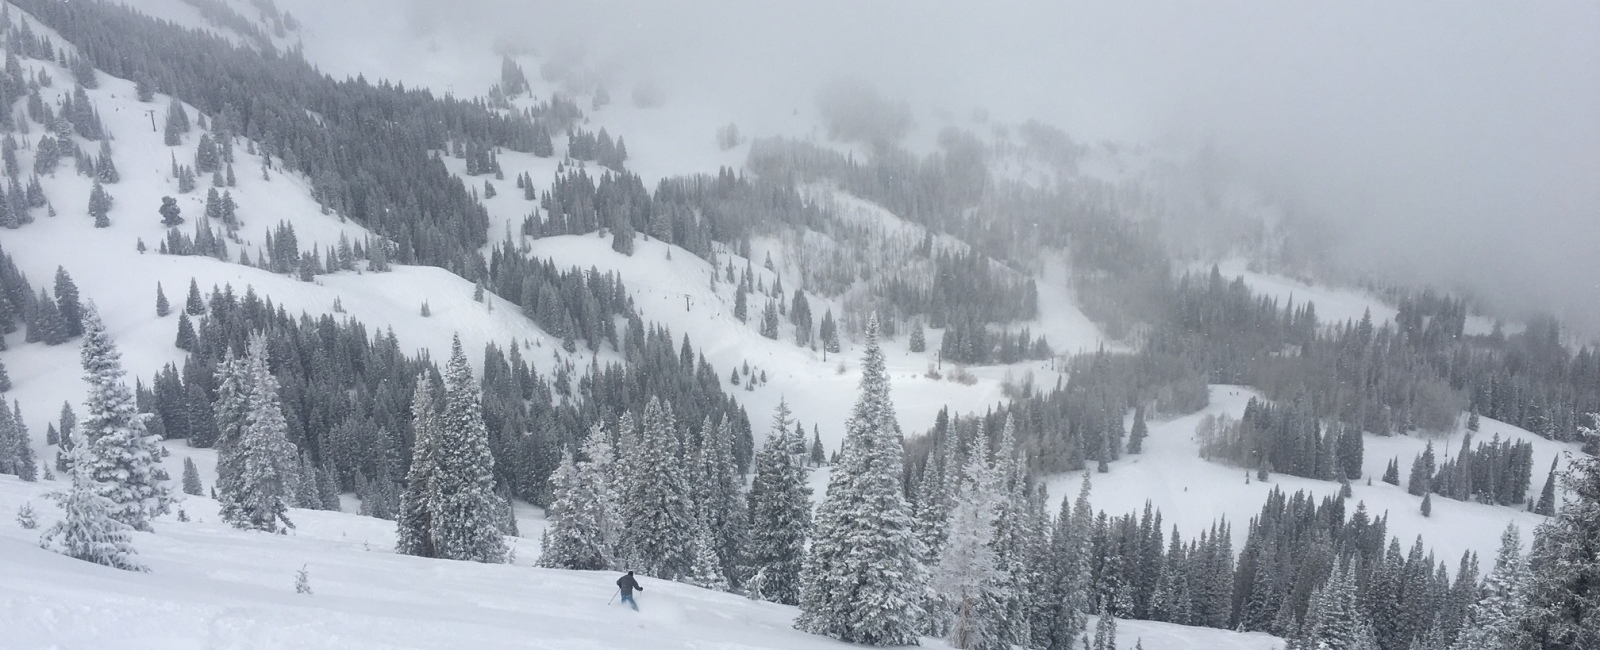 Powder in the Resorts and Powder in Backcountry